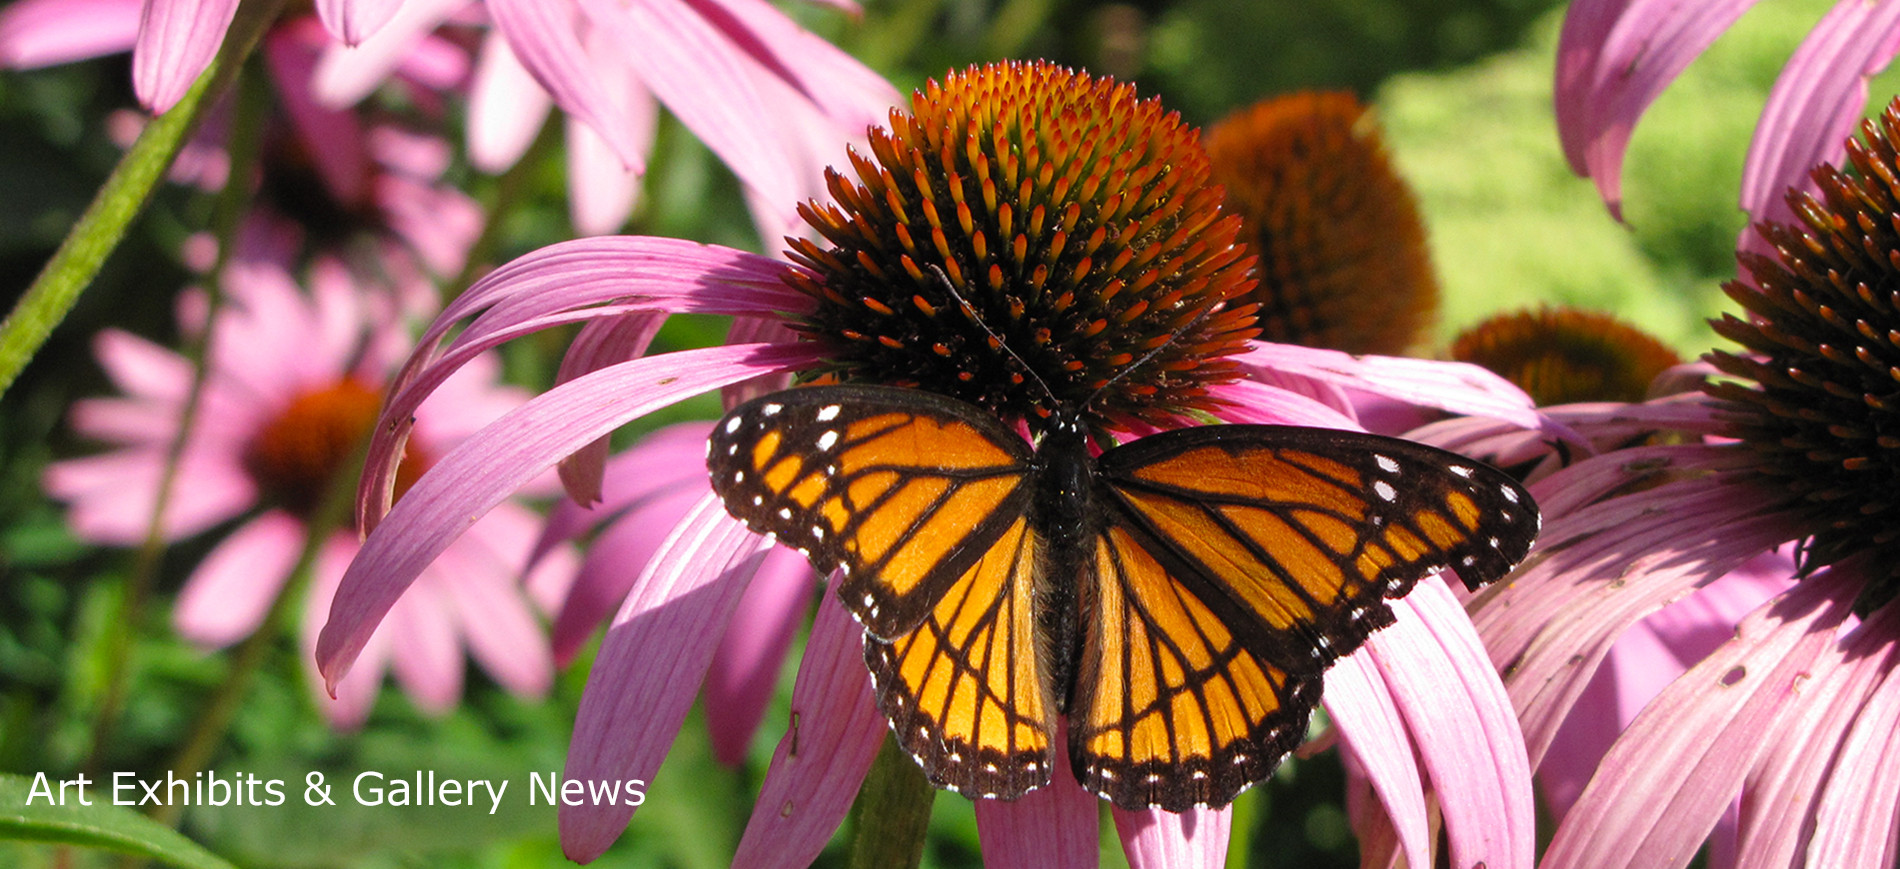 Butterfly on cone flowers ~ Art Exhibits & Gallery News